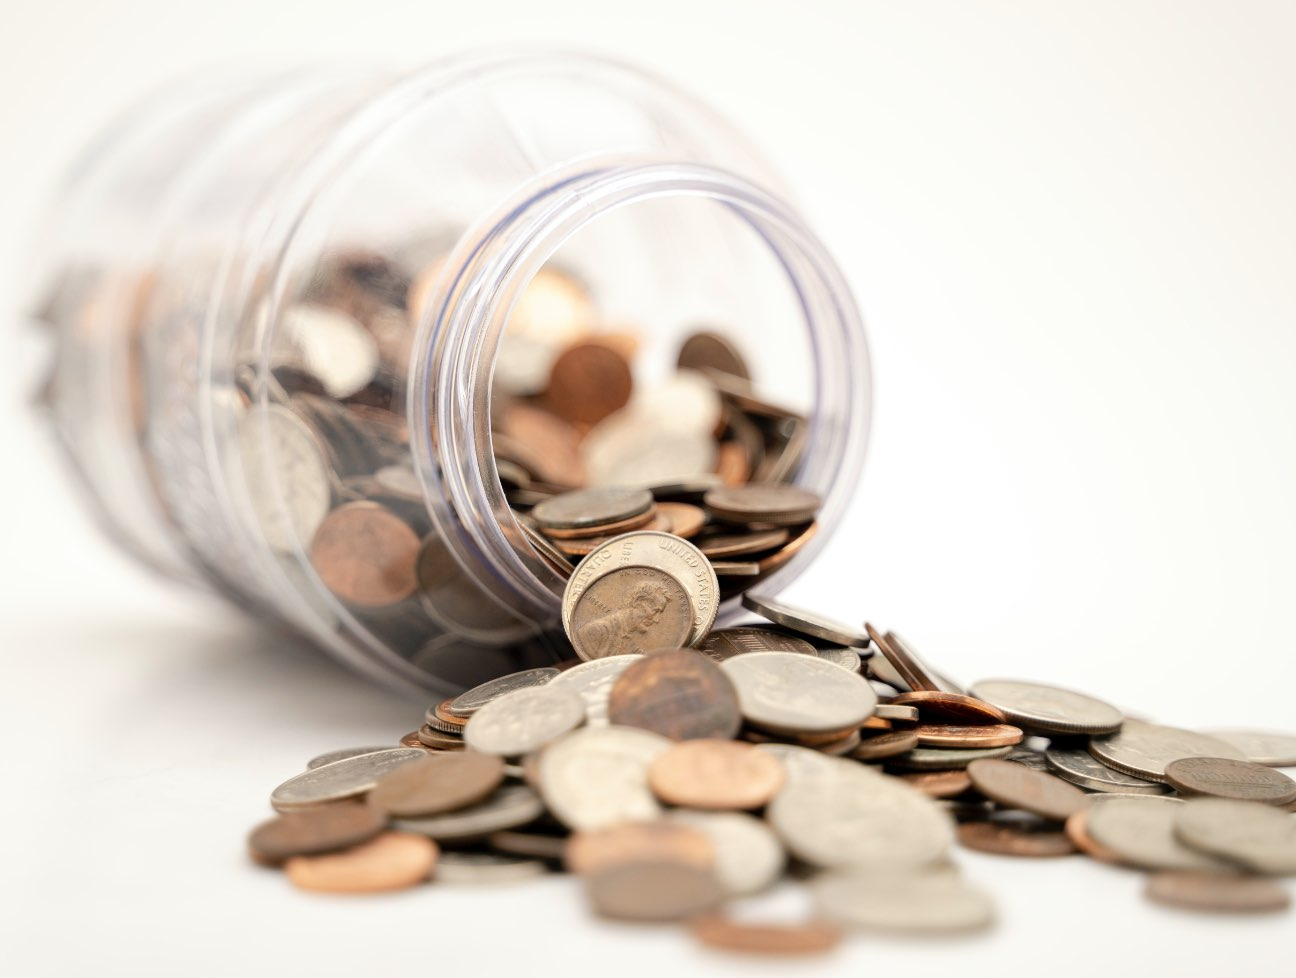 A jar of change on its side with coins spilling out.